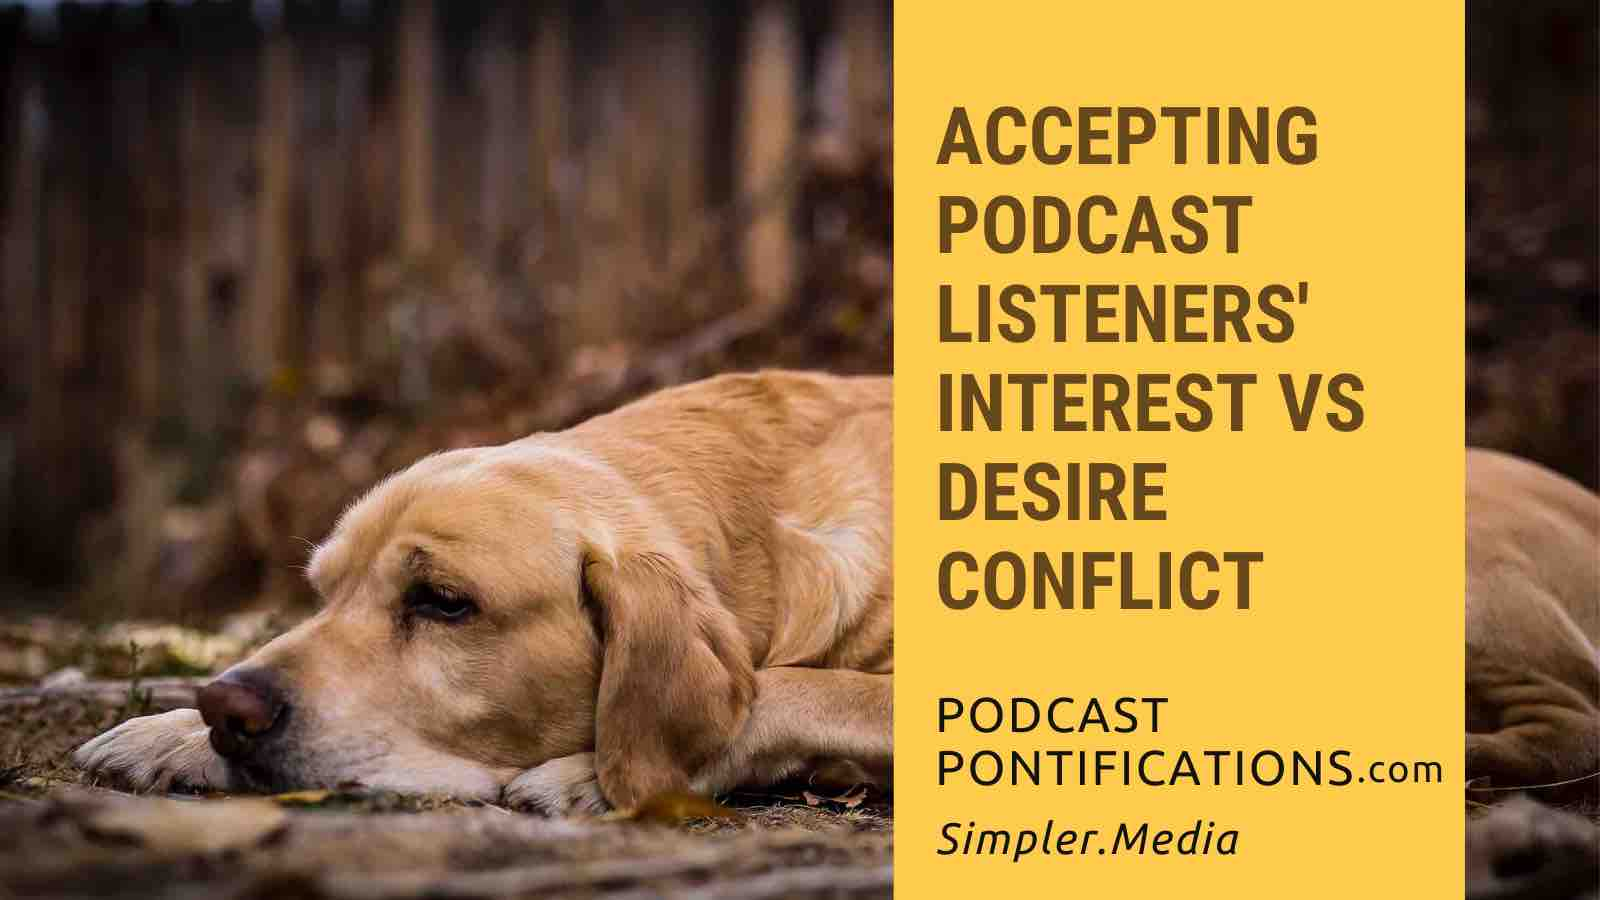 Accepting Podcast Listeners' Interest vs Desire Conflict